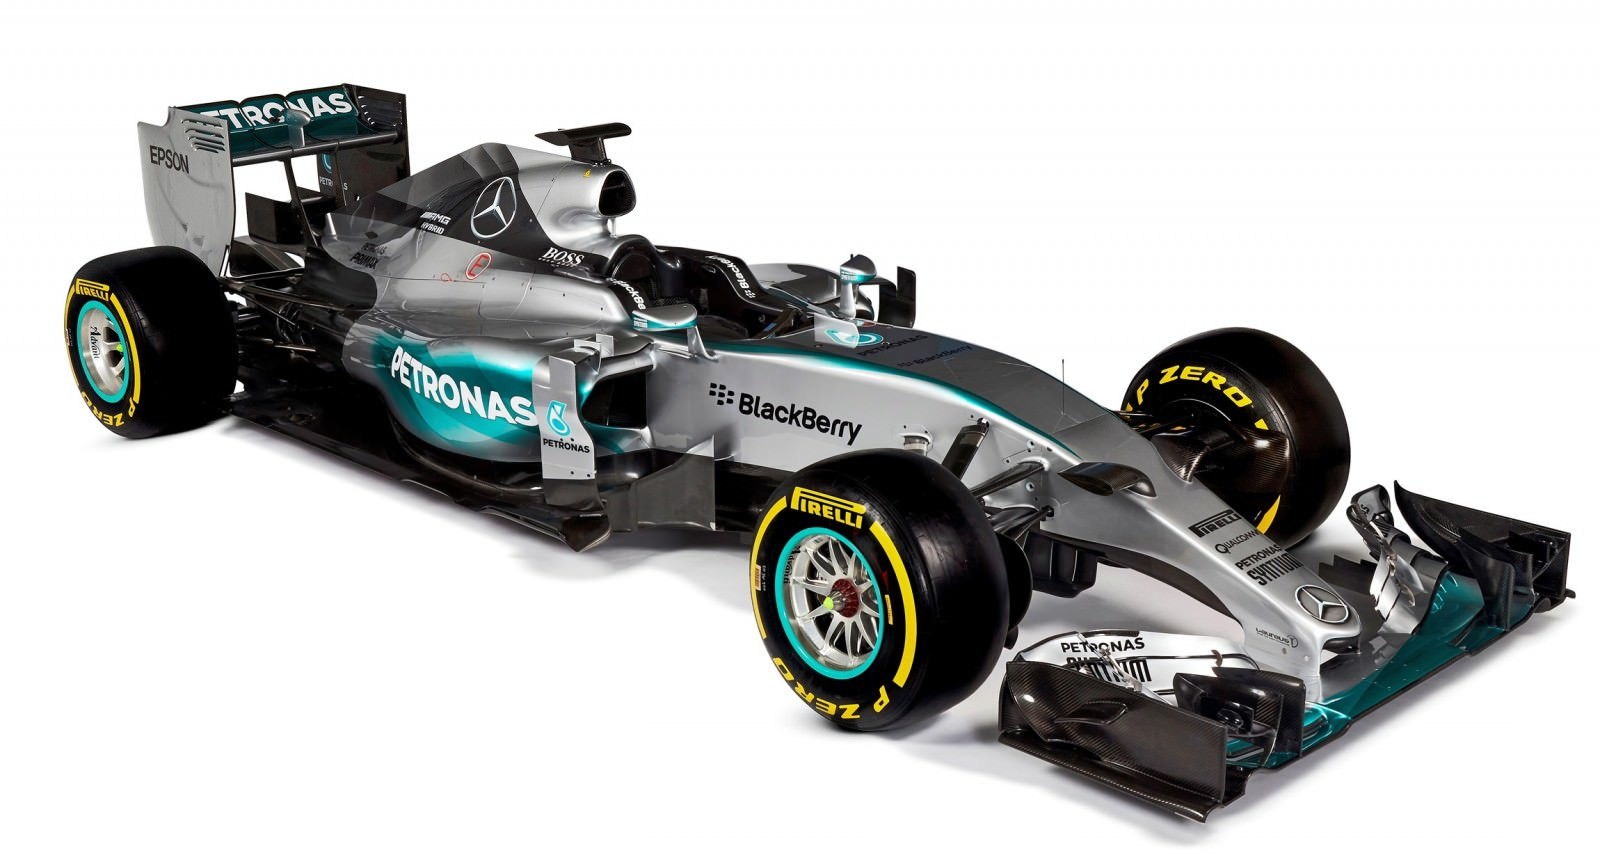 2015 F1 Cars Comparo - Infiniti RB11 vs McLaren-Honda MP4-30 vs AMG W06 vs Ferrari SF15T 43